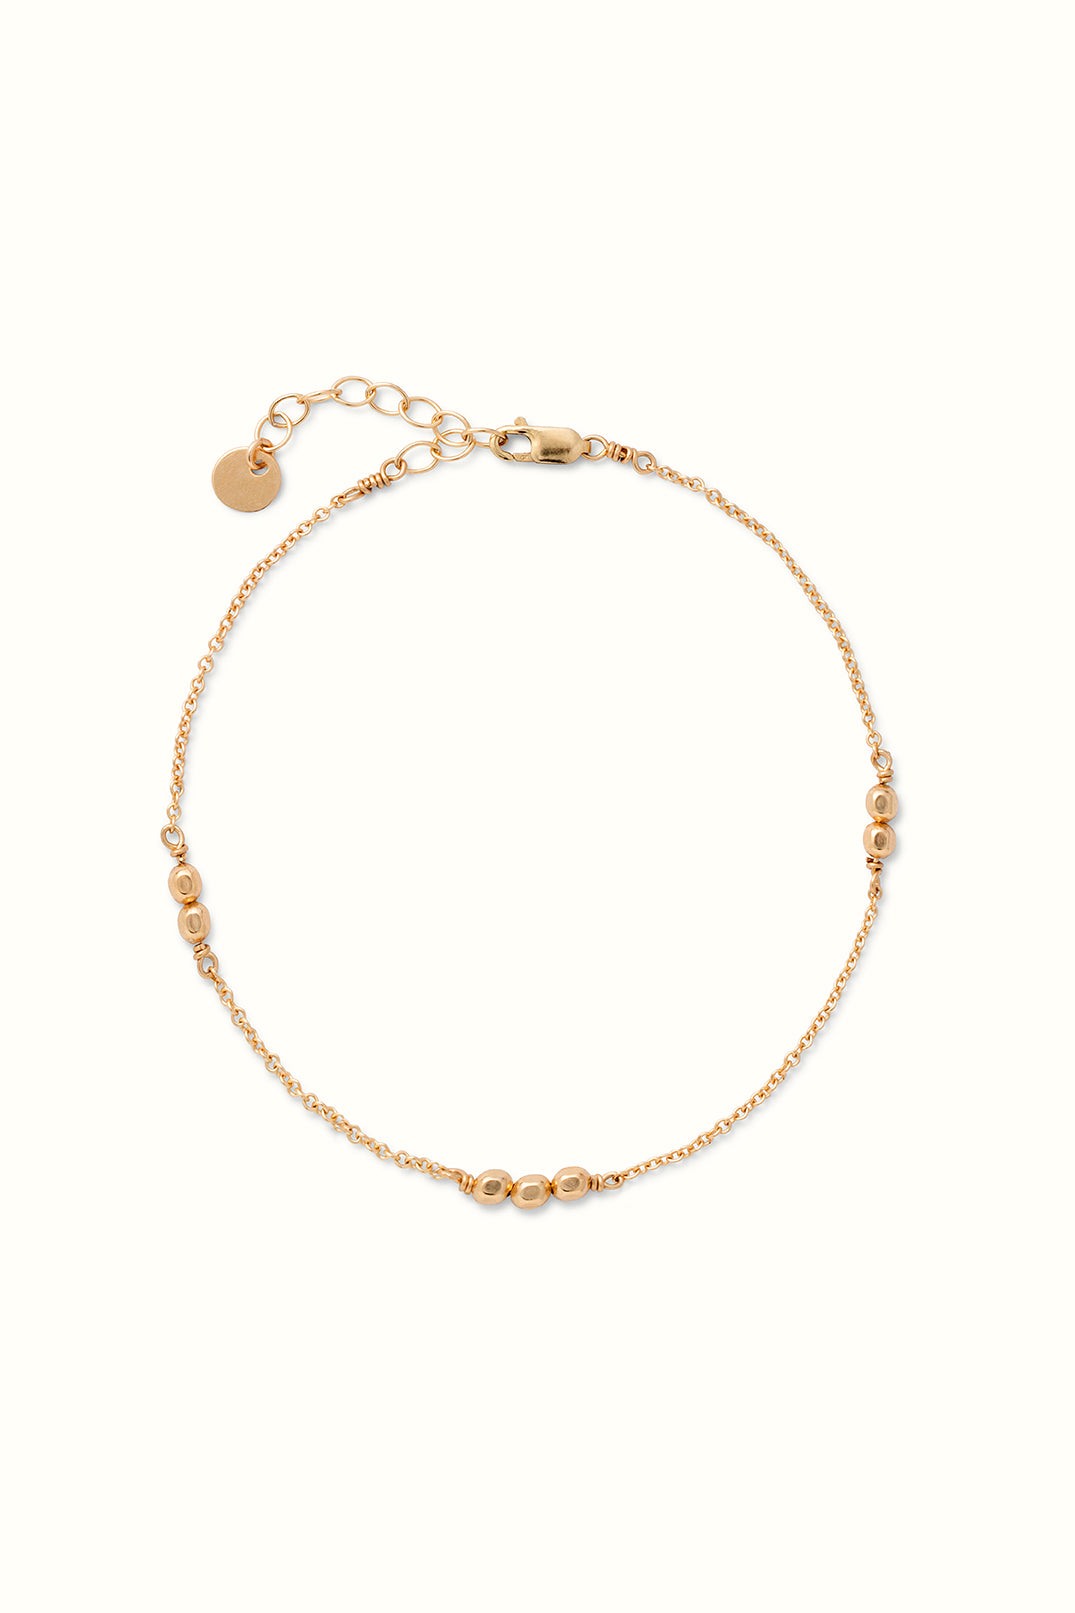 a gold filled beaded chain bracelet lying on a white surface